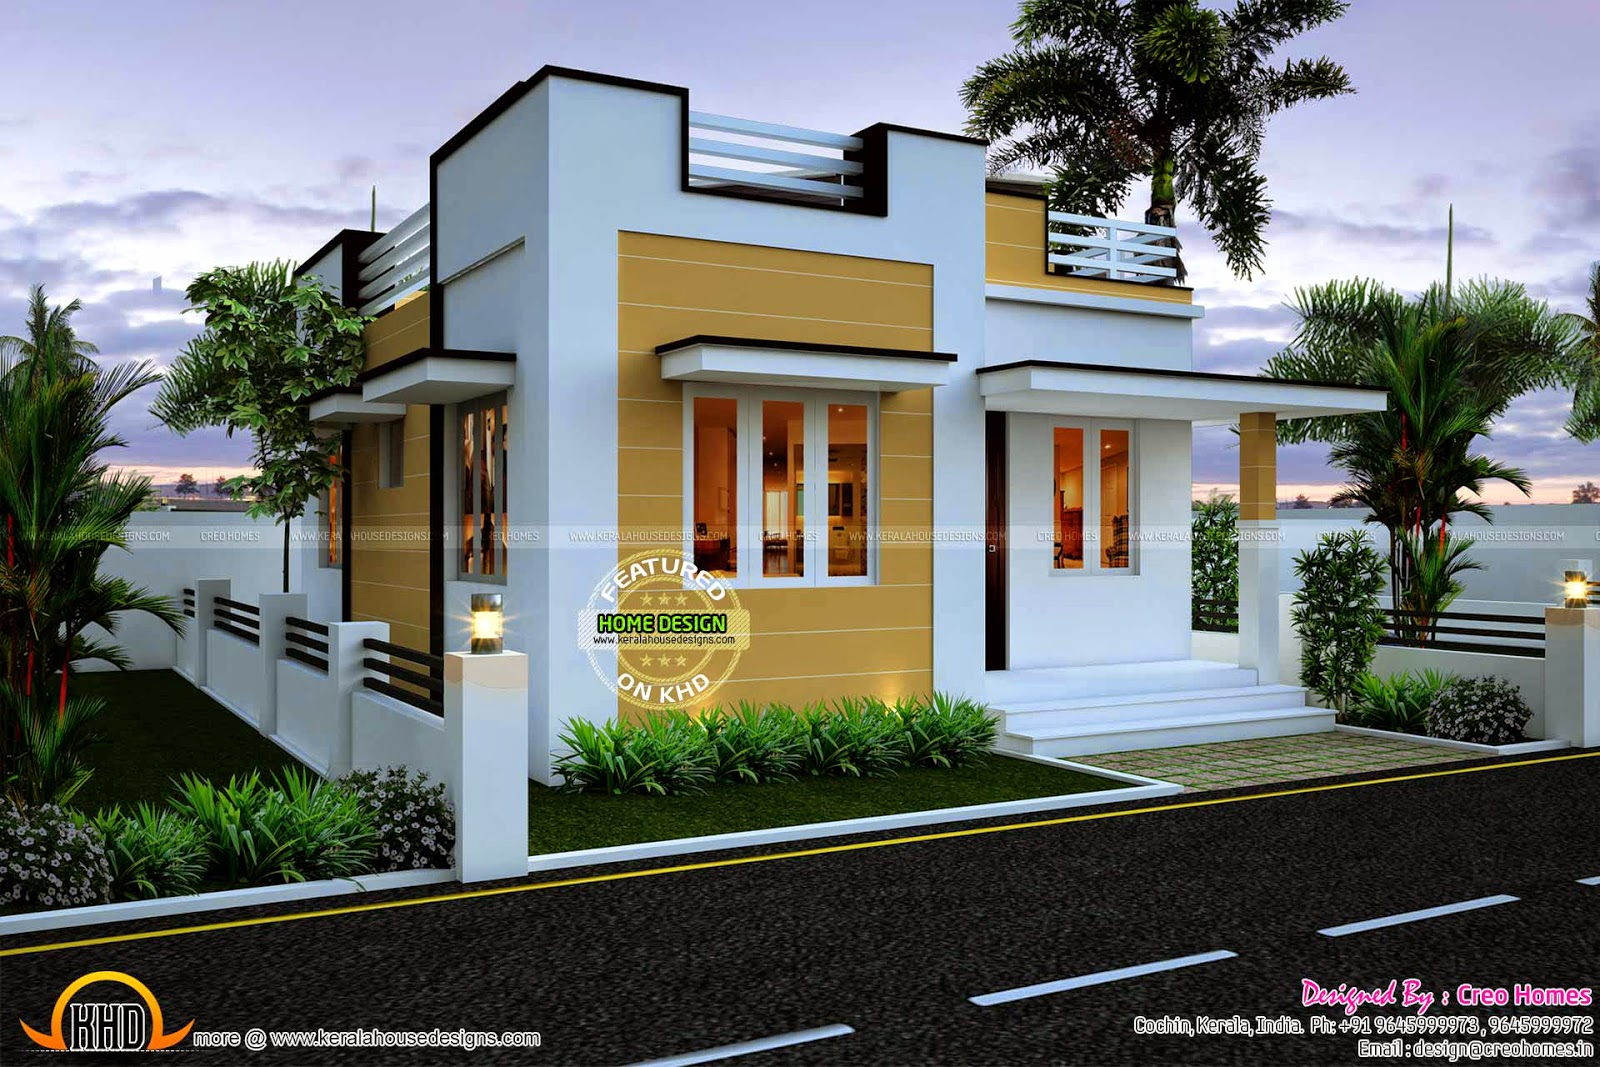 House for 5 lakhs in kerala kerala home design and floor for Award winning house designs in india